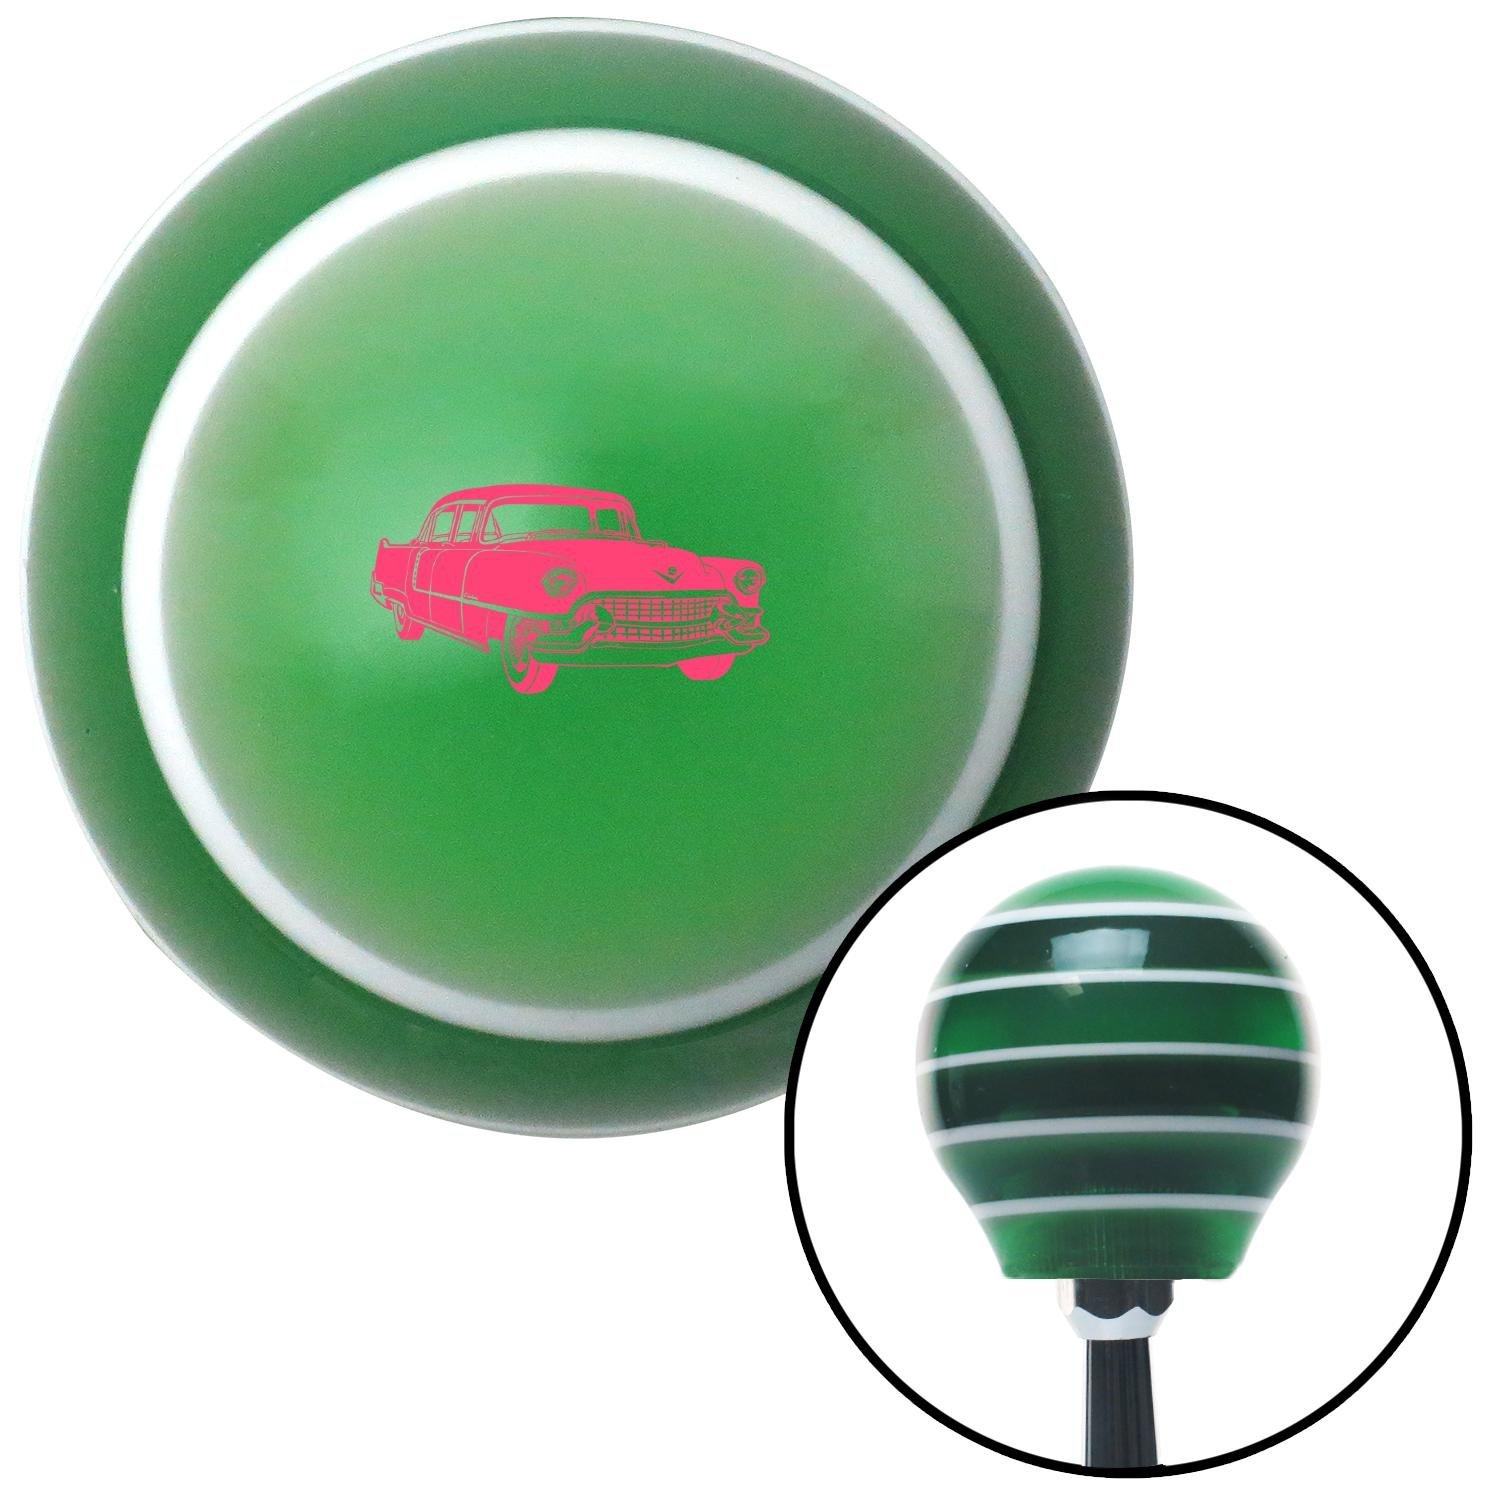 American Shifter 305683 Shift Knob Pink Chevy 2 Green Stripe with M16 x 1.5 Insert